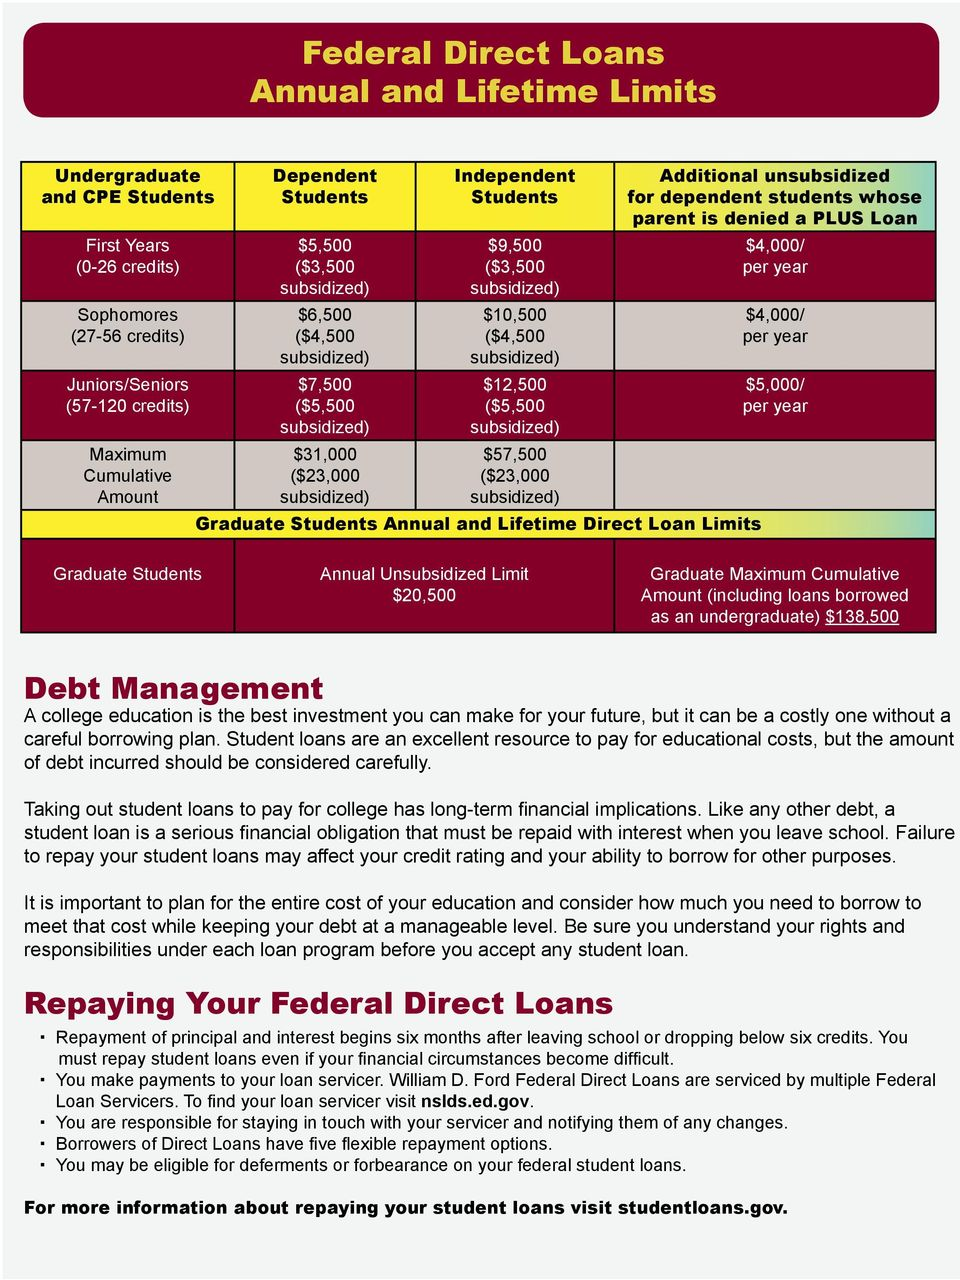 subsidized) $12,500 ($5,500 subsidized) $57,500 ($23,000 subsidized) Graduate Students Annual and Lifetime Direct Loan Limits Additional unsubsidized for dependent students whose parent is denied a